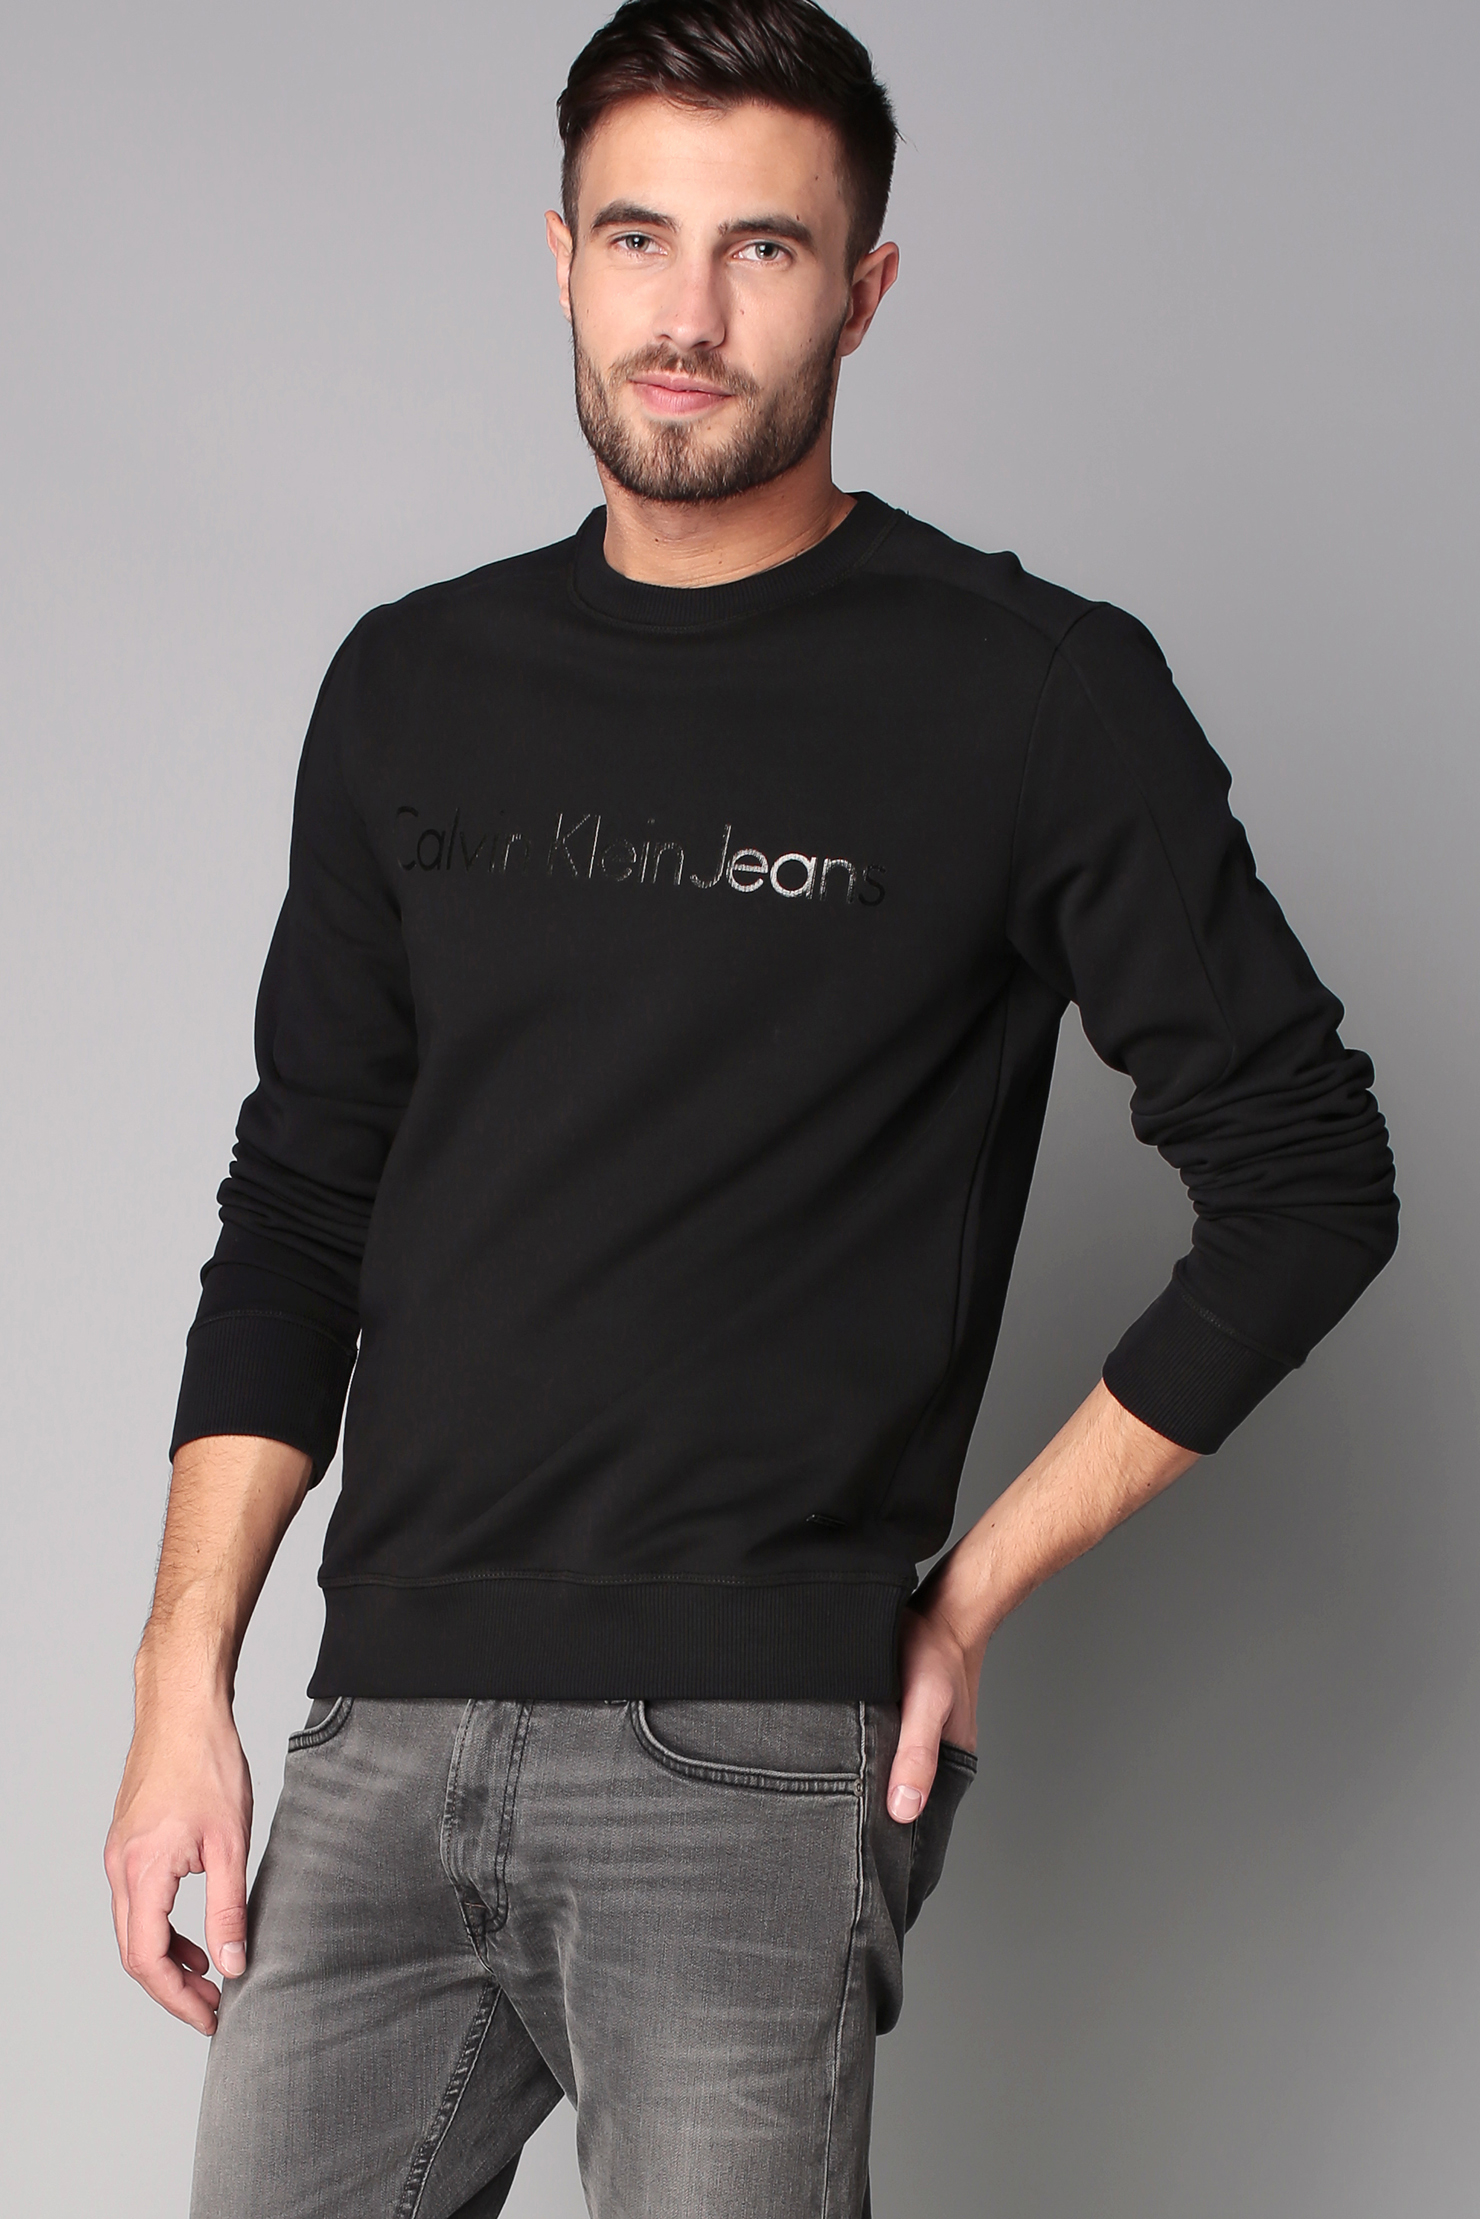 black single men in calvin Find the latest styles and selection in calvin klein clothing from men's calvin klein black bow the regular price of items in a single retail.